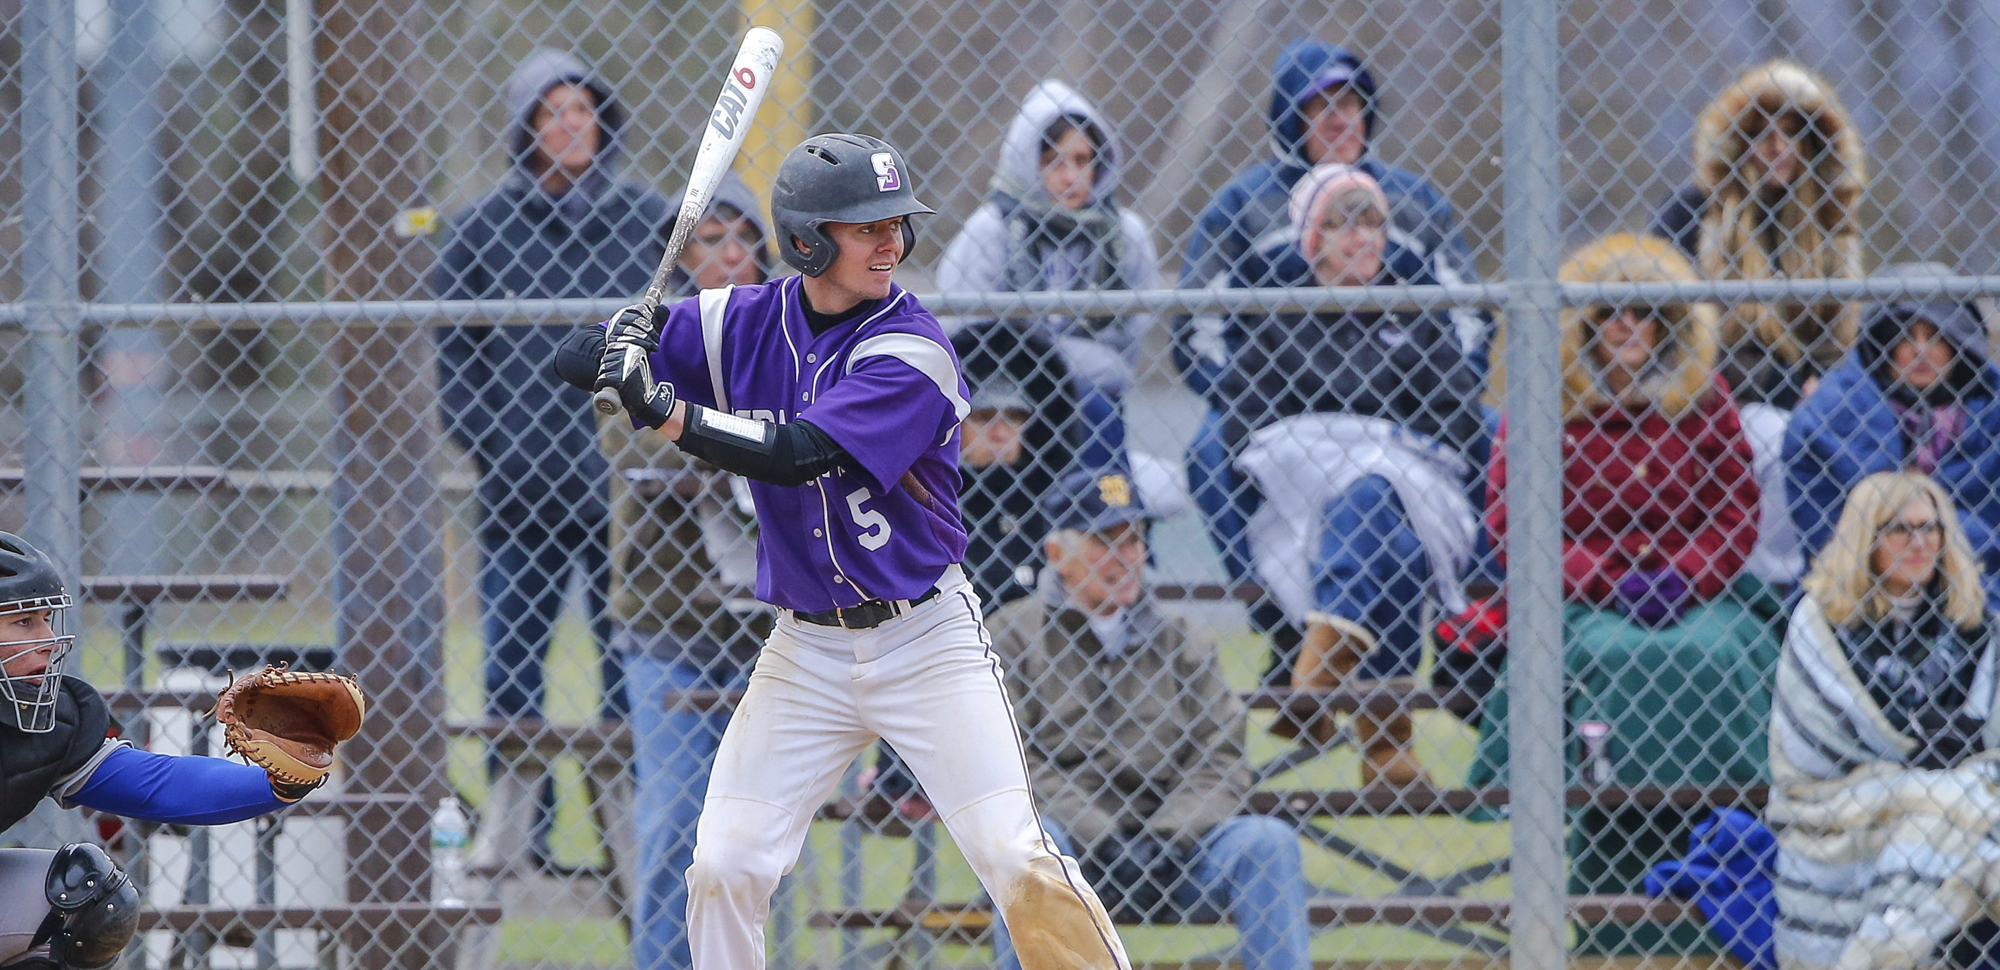 Junior Brad Schneider homered in the first game on Saturday at Catholic.